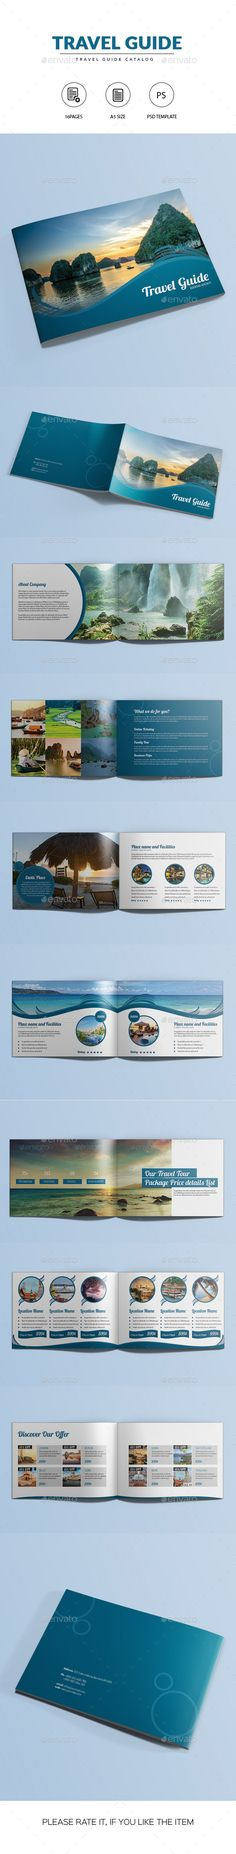 Travel Guide Catalog / Brochure PSD Template #design Download: http://graphicriver.net/item/travel-guide-catalogbrochure/12782744?ref=ksioks